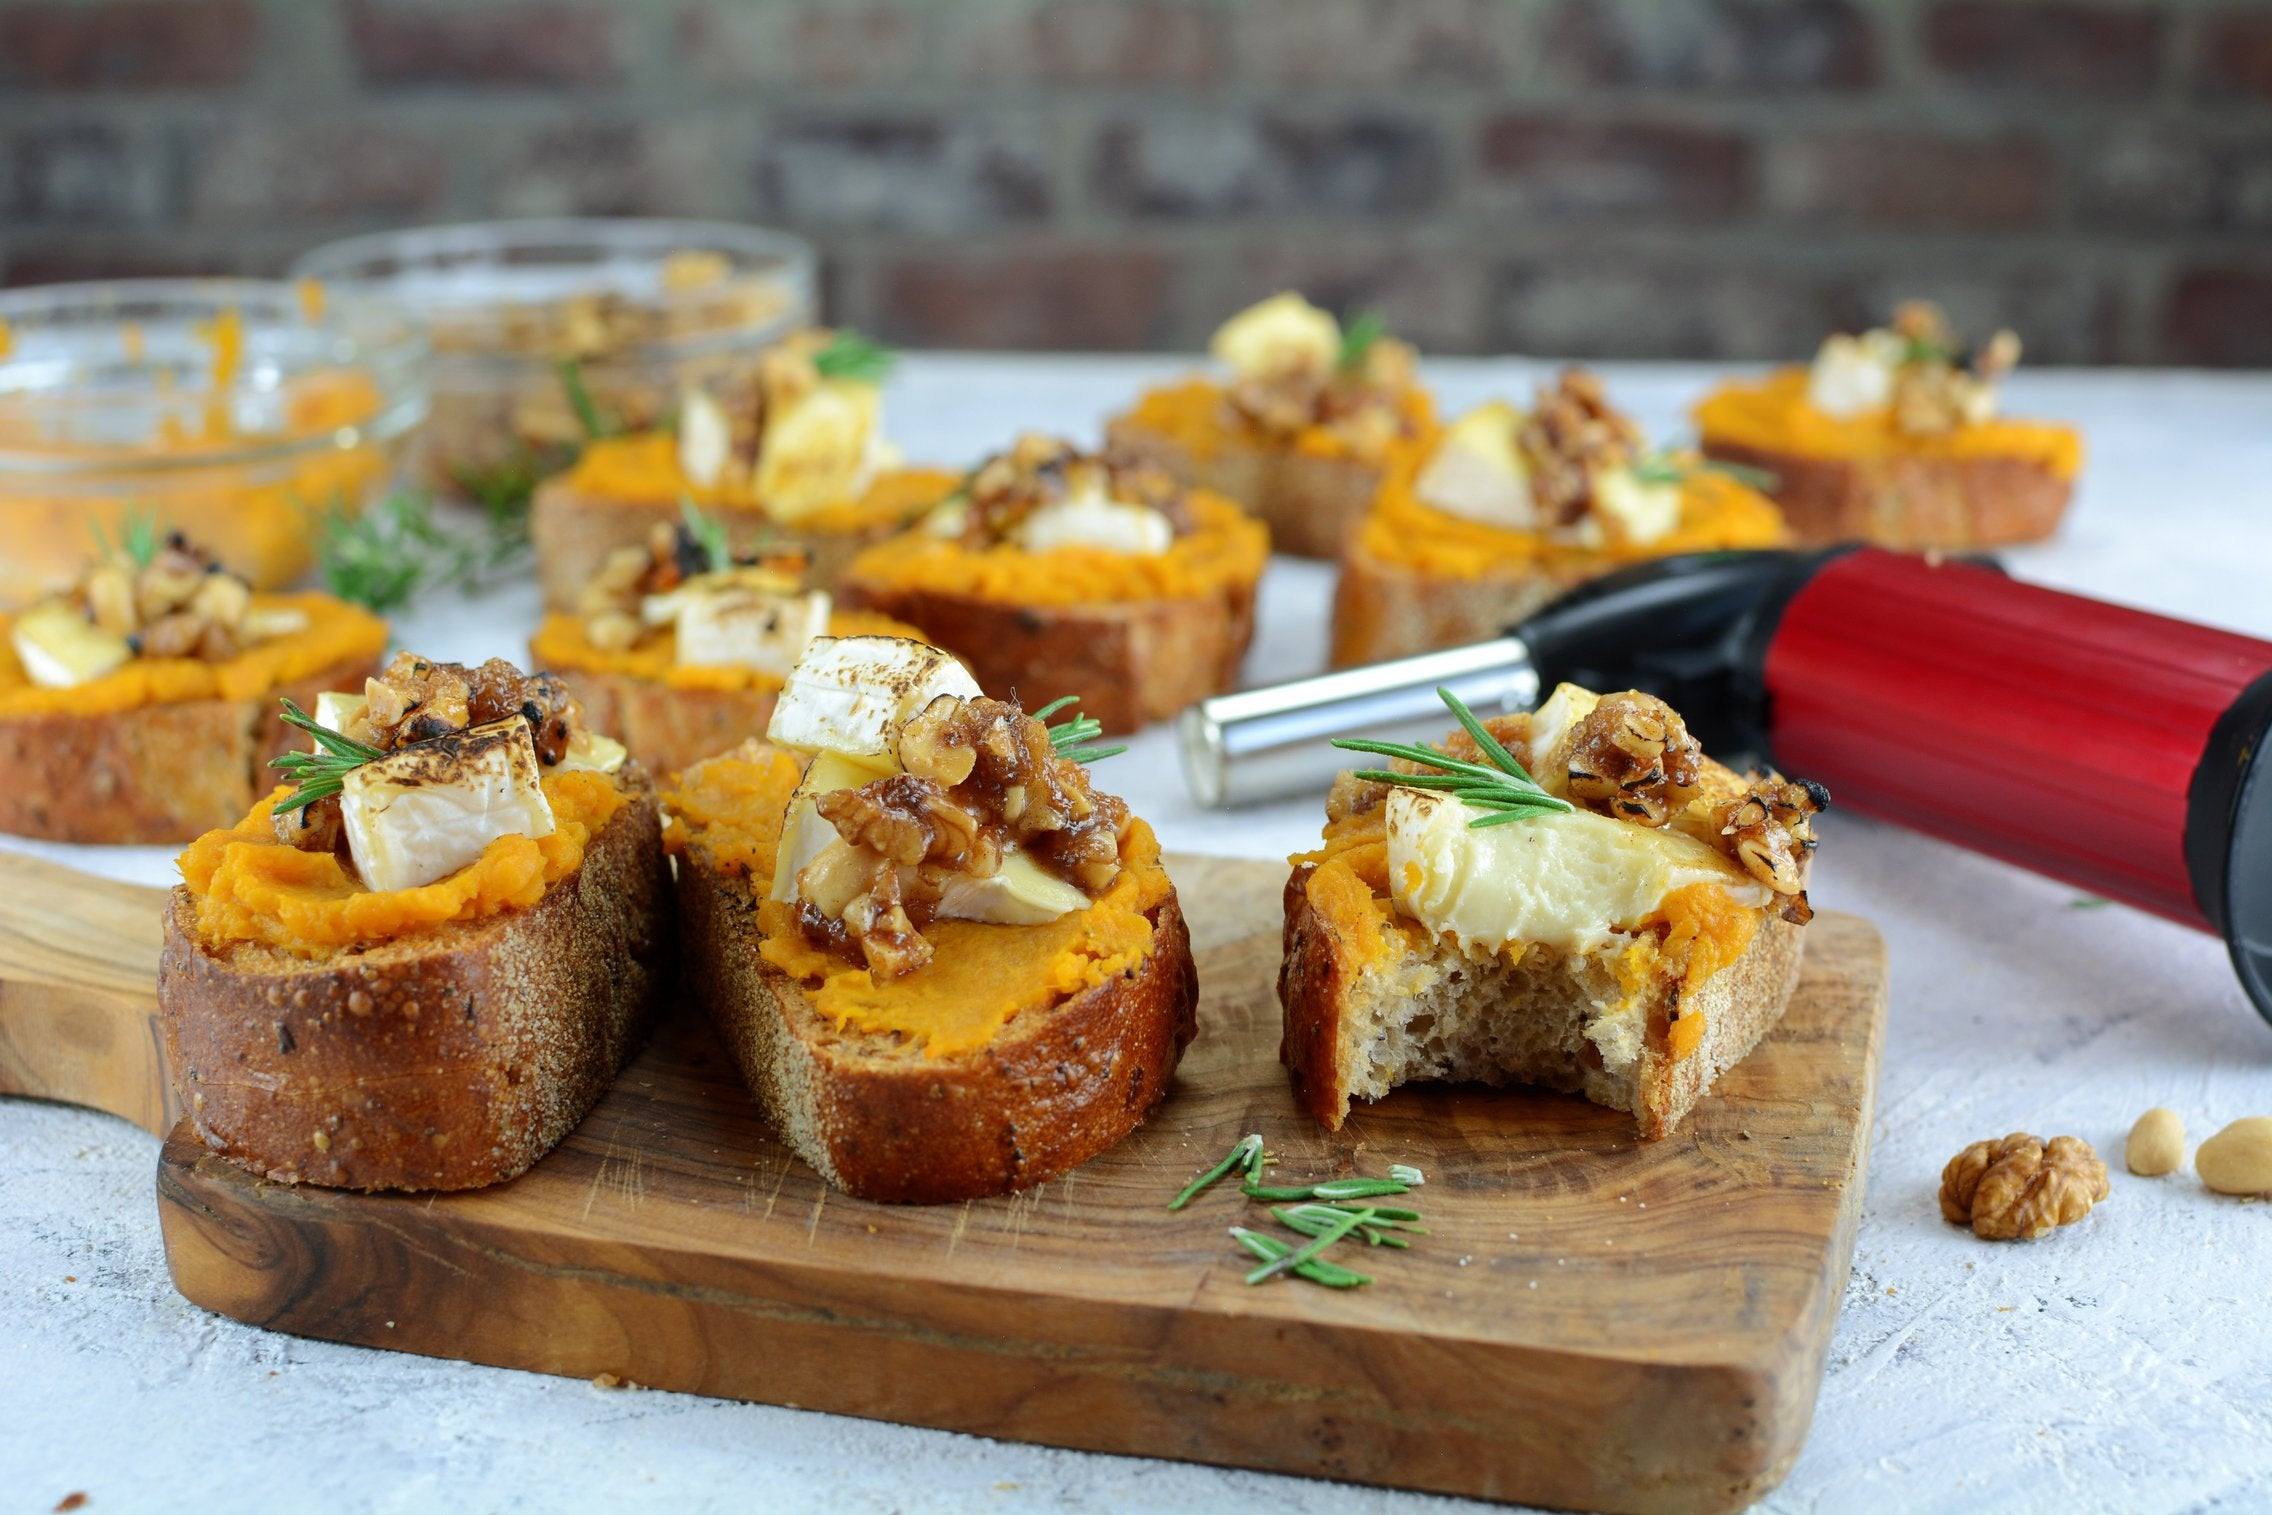 Sweet Potato and Brie Crostini with Candied Nuts with Torch